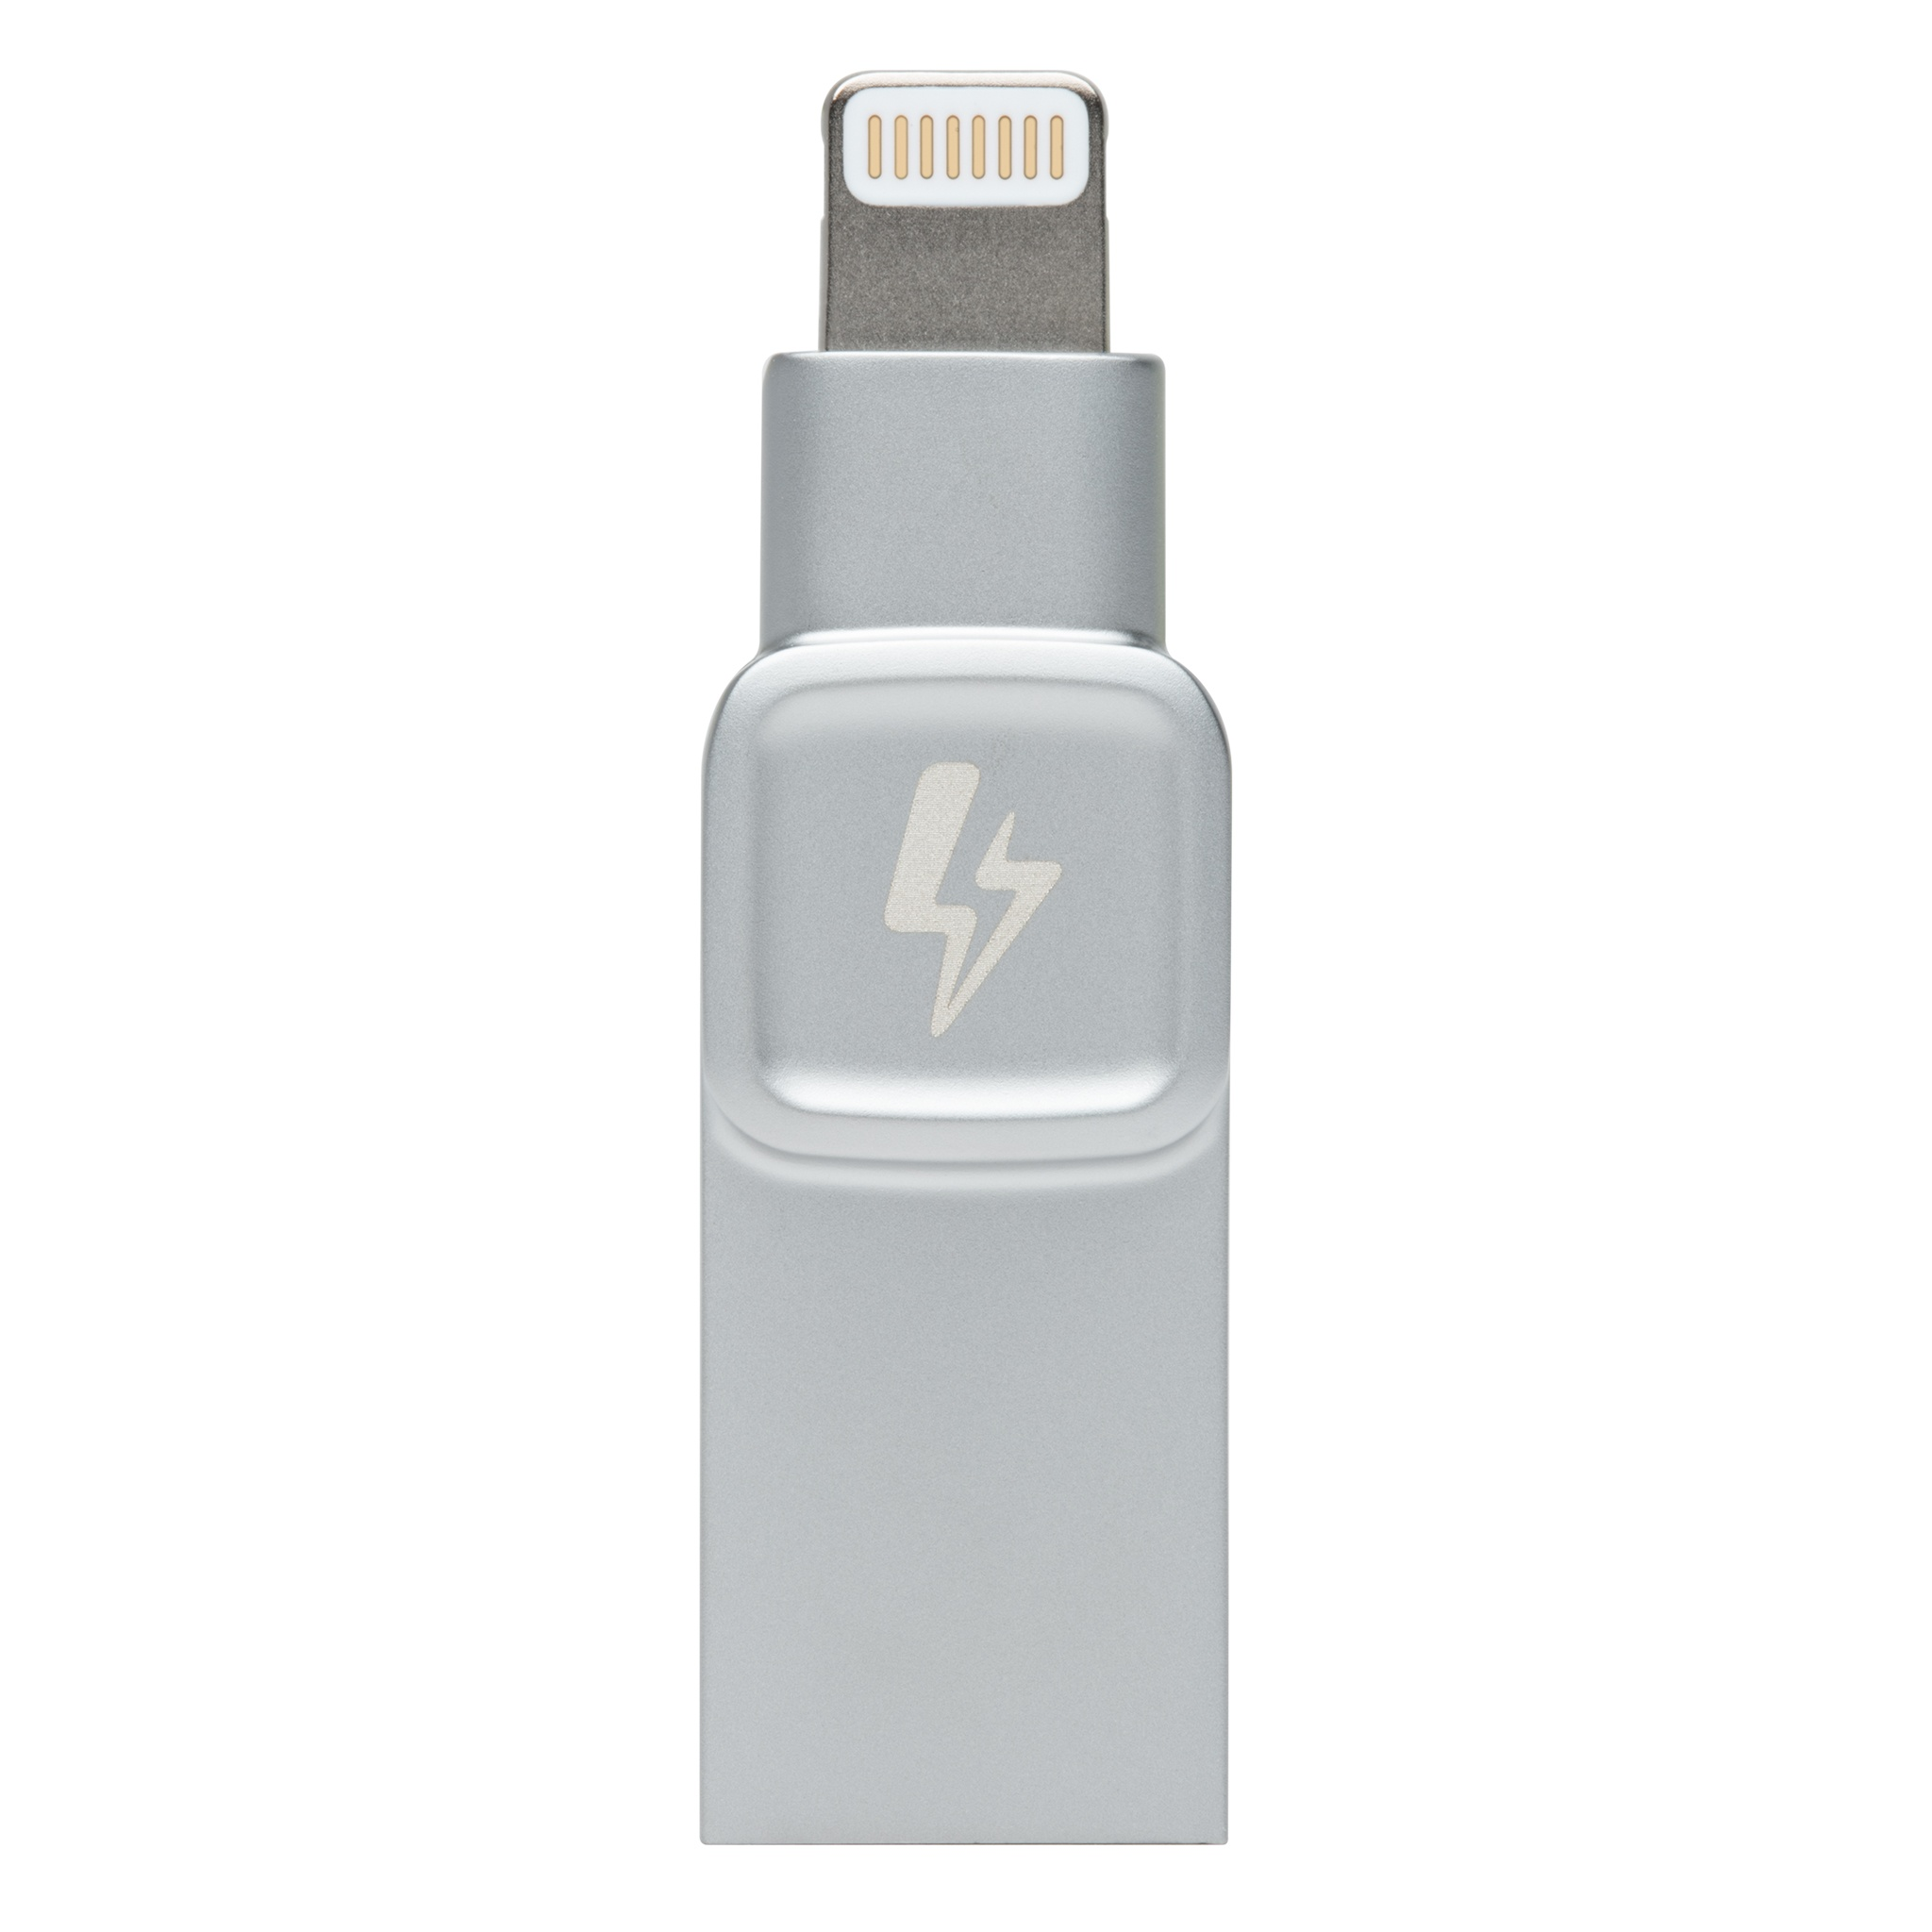 DataTraveler Bolt Duo USB Flash Drive for iPhones and iPads